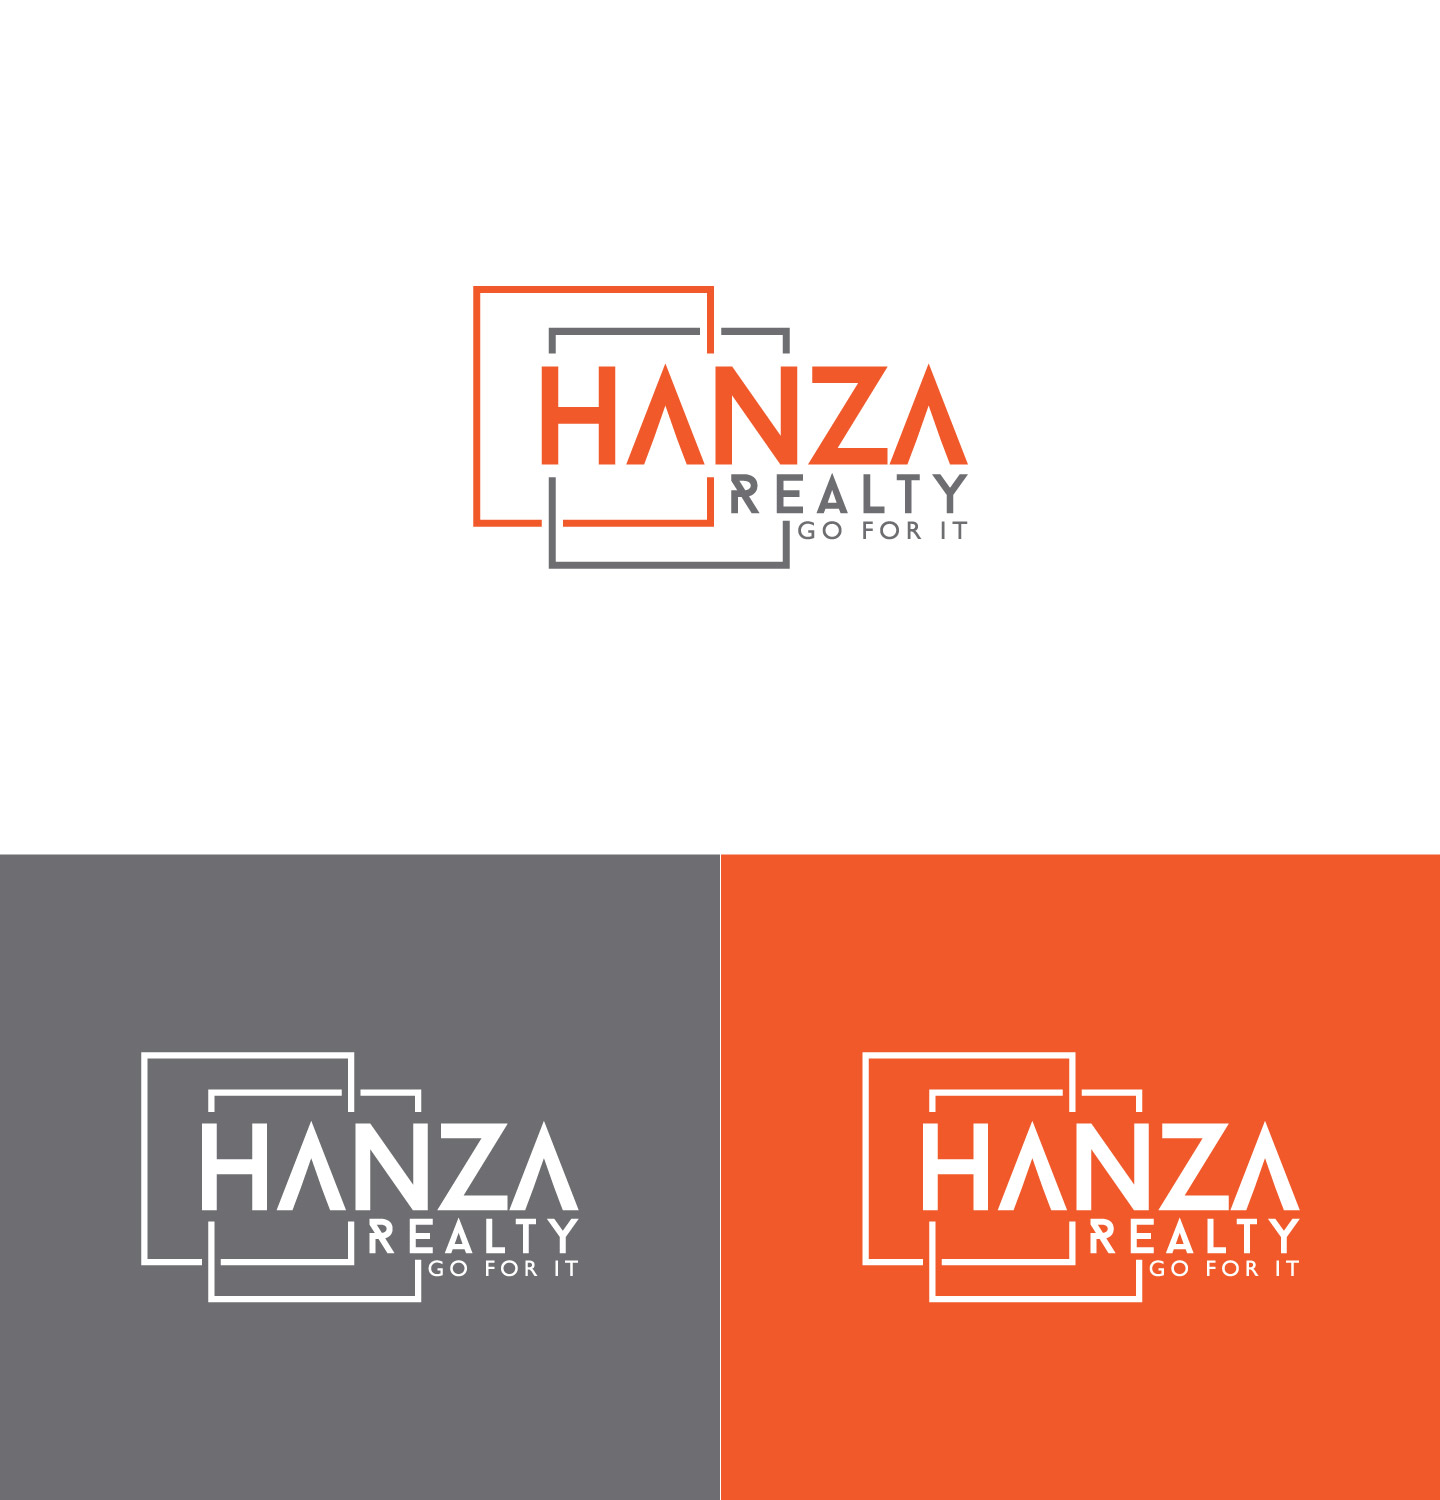 Logo Design by Raiyan Kabir - Entry No. 436 in the Logo Design Contest Logo Design for Hanza Realty.